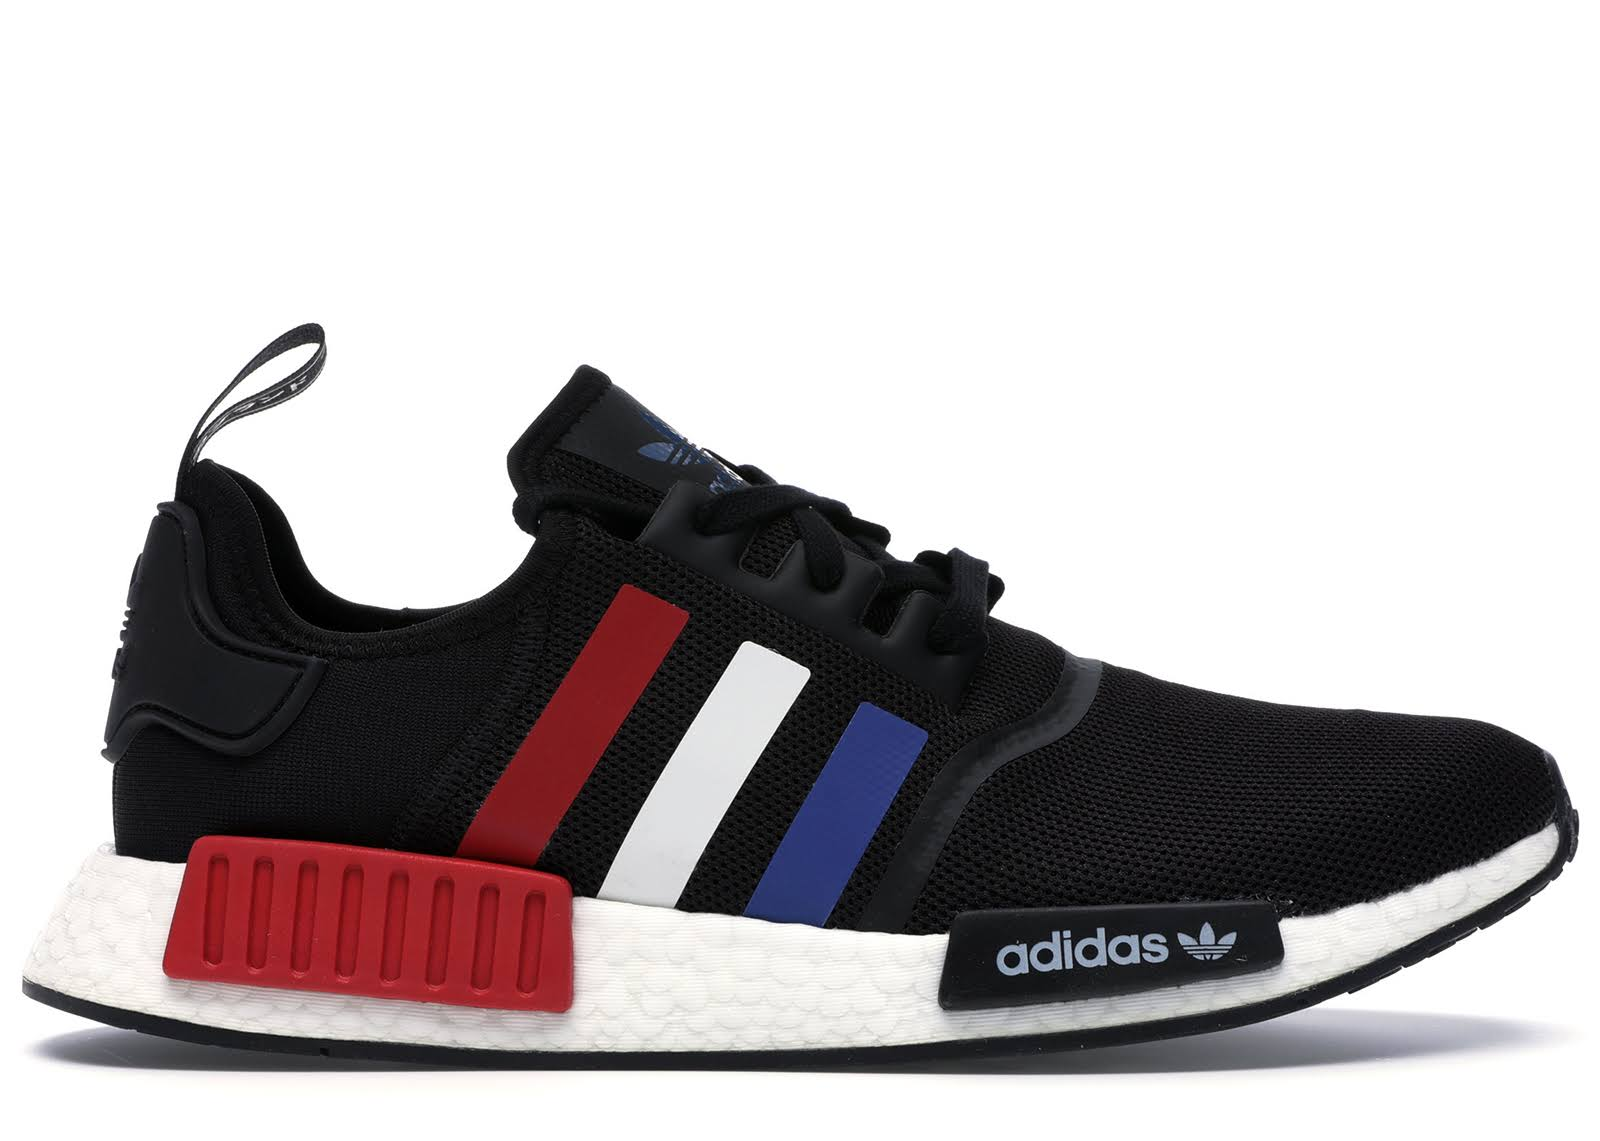 Adidas NMD R1 Color Shoes - Size 8.5